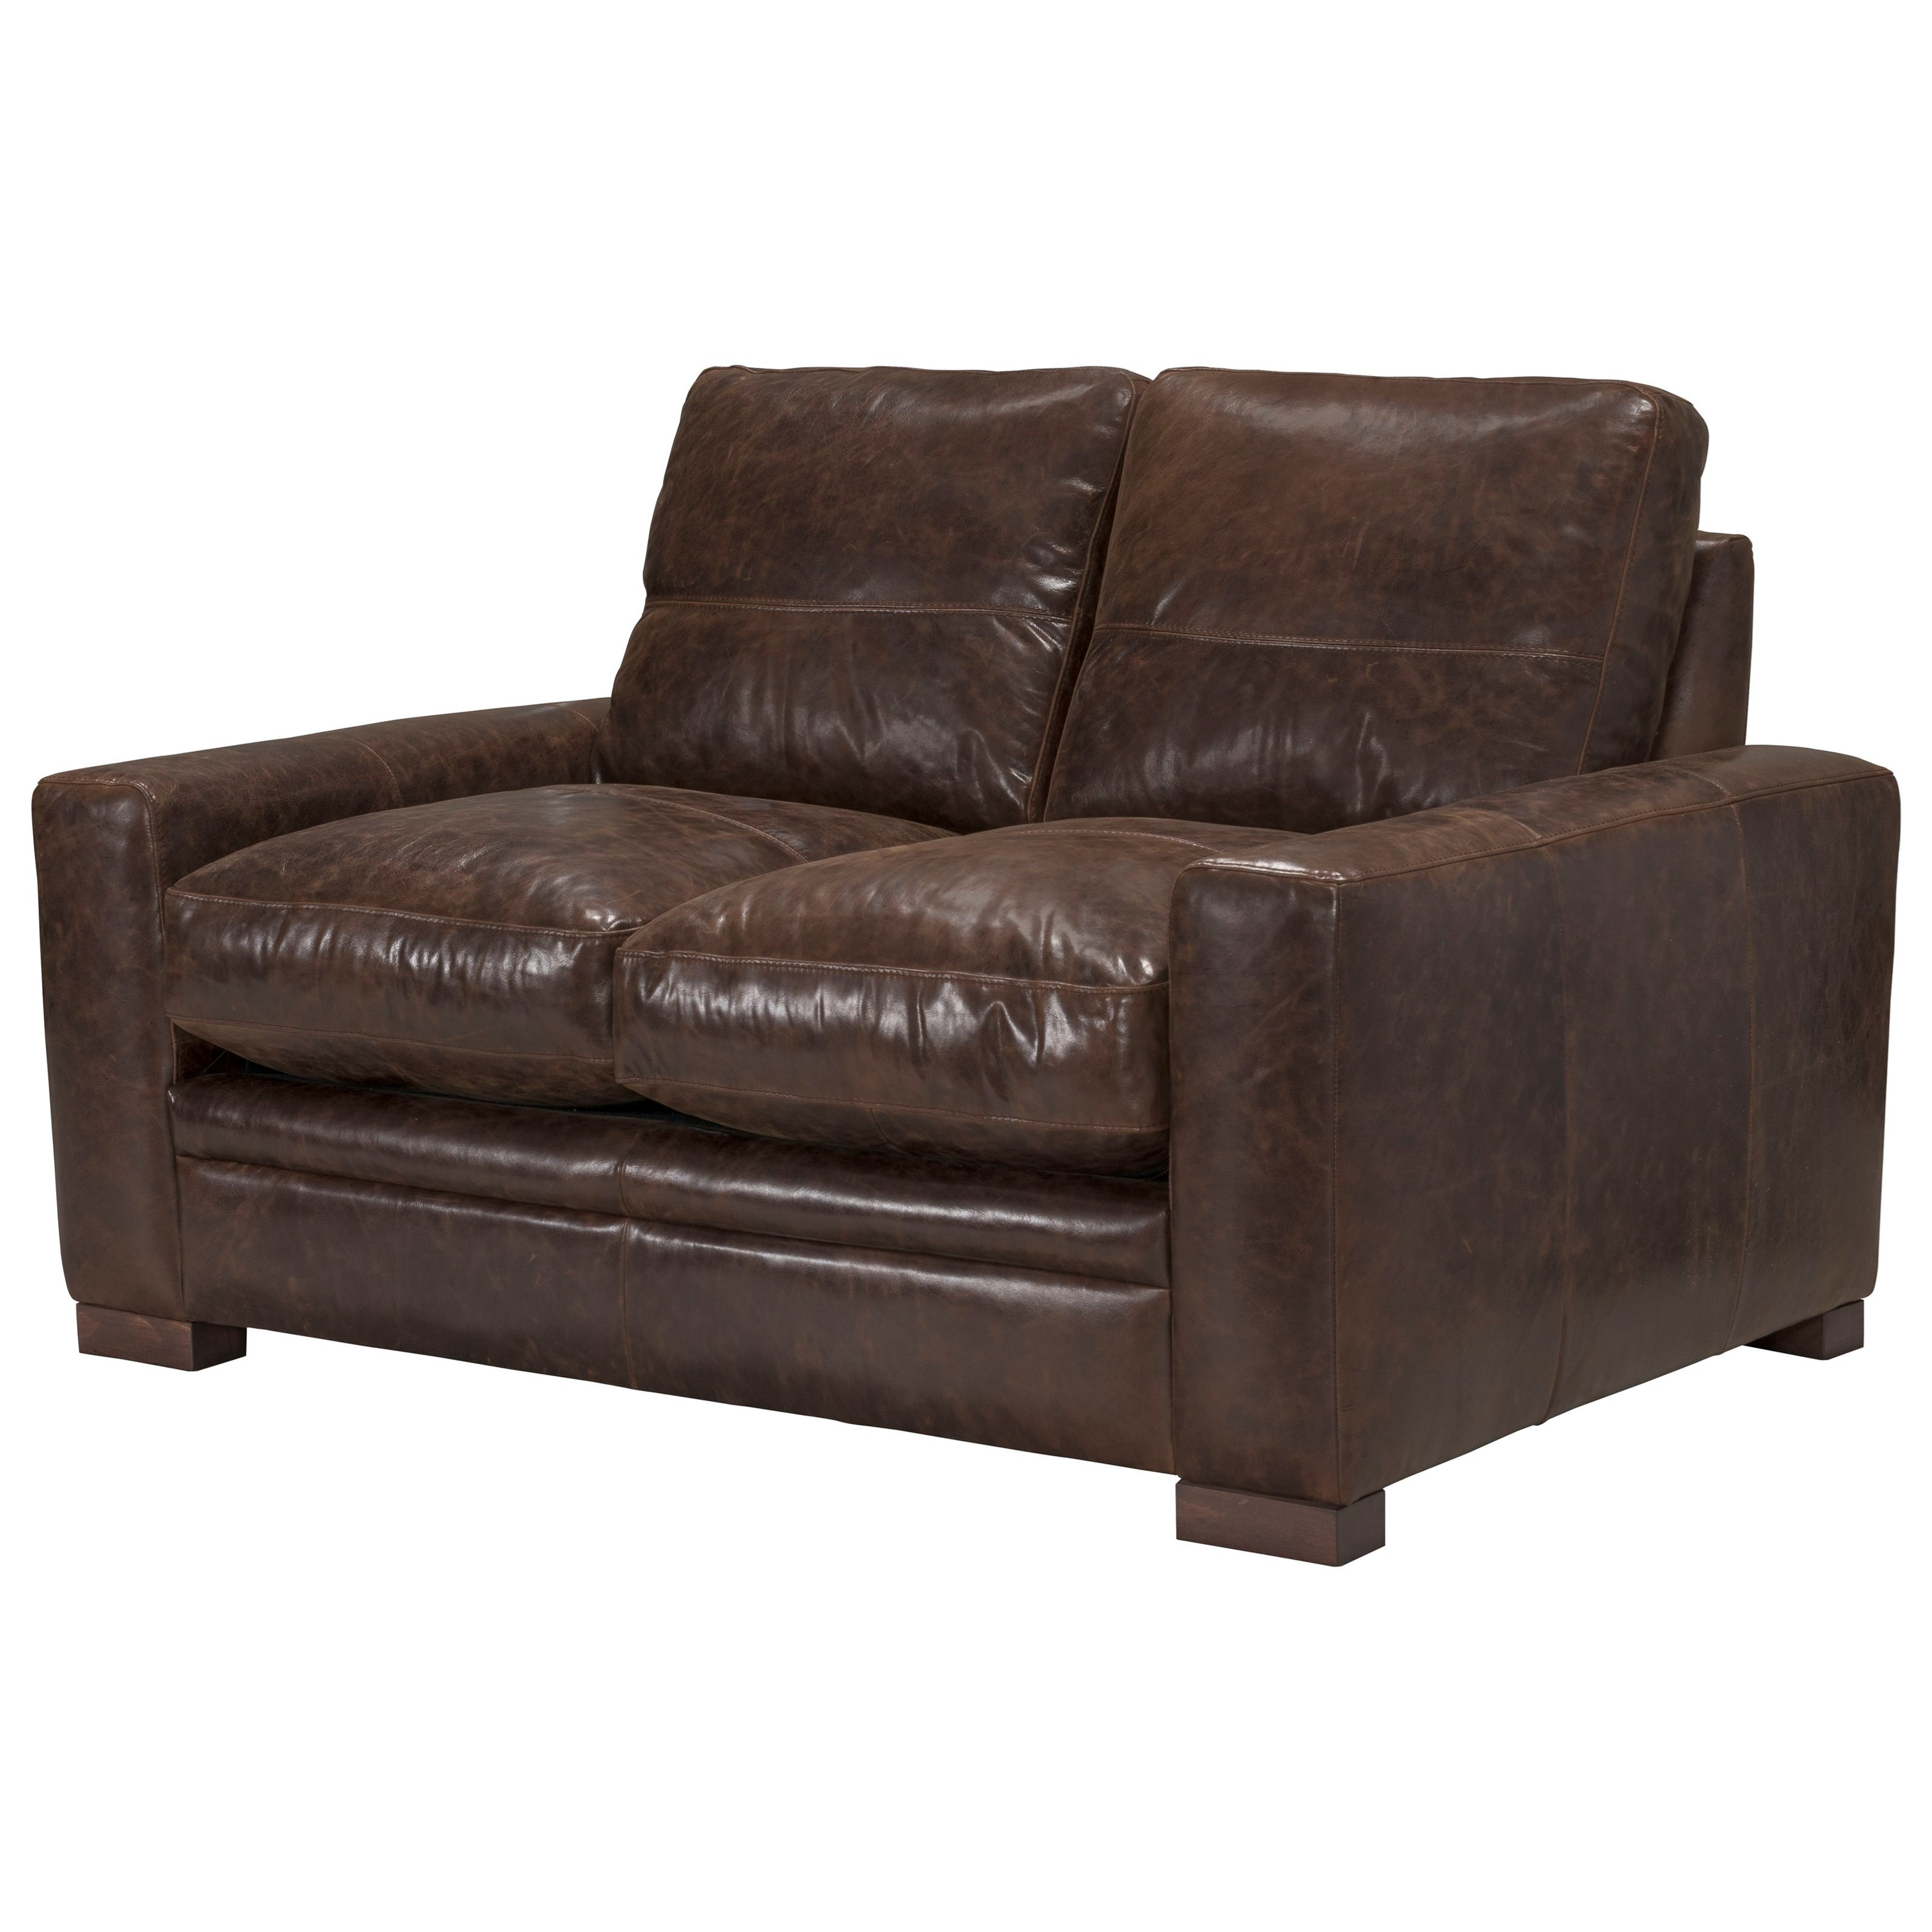 Modena Loveseat by Acme Furniture at Rooms for Less